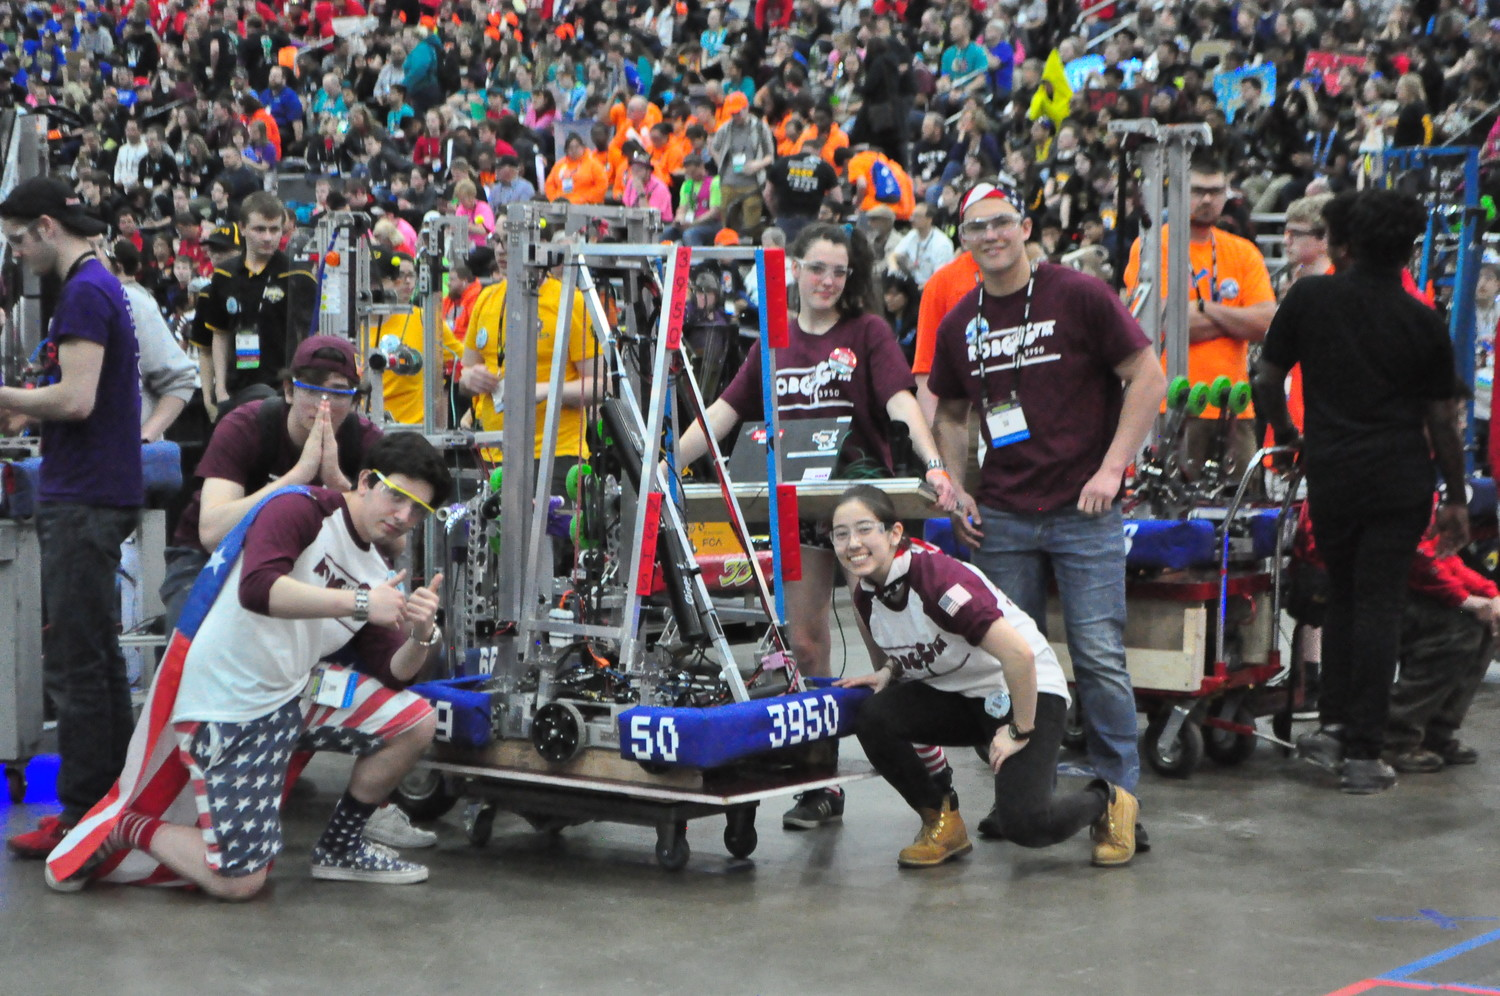 Team members Jacob Berlin, far left, Andrew Vallone, Hally Bello, Hanah Leventhal and Bryce Roth were tasked with maneuvering the robot during the tournament.